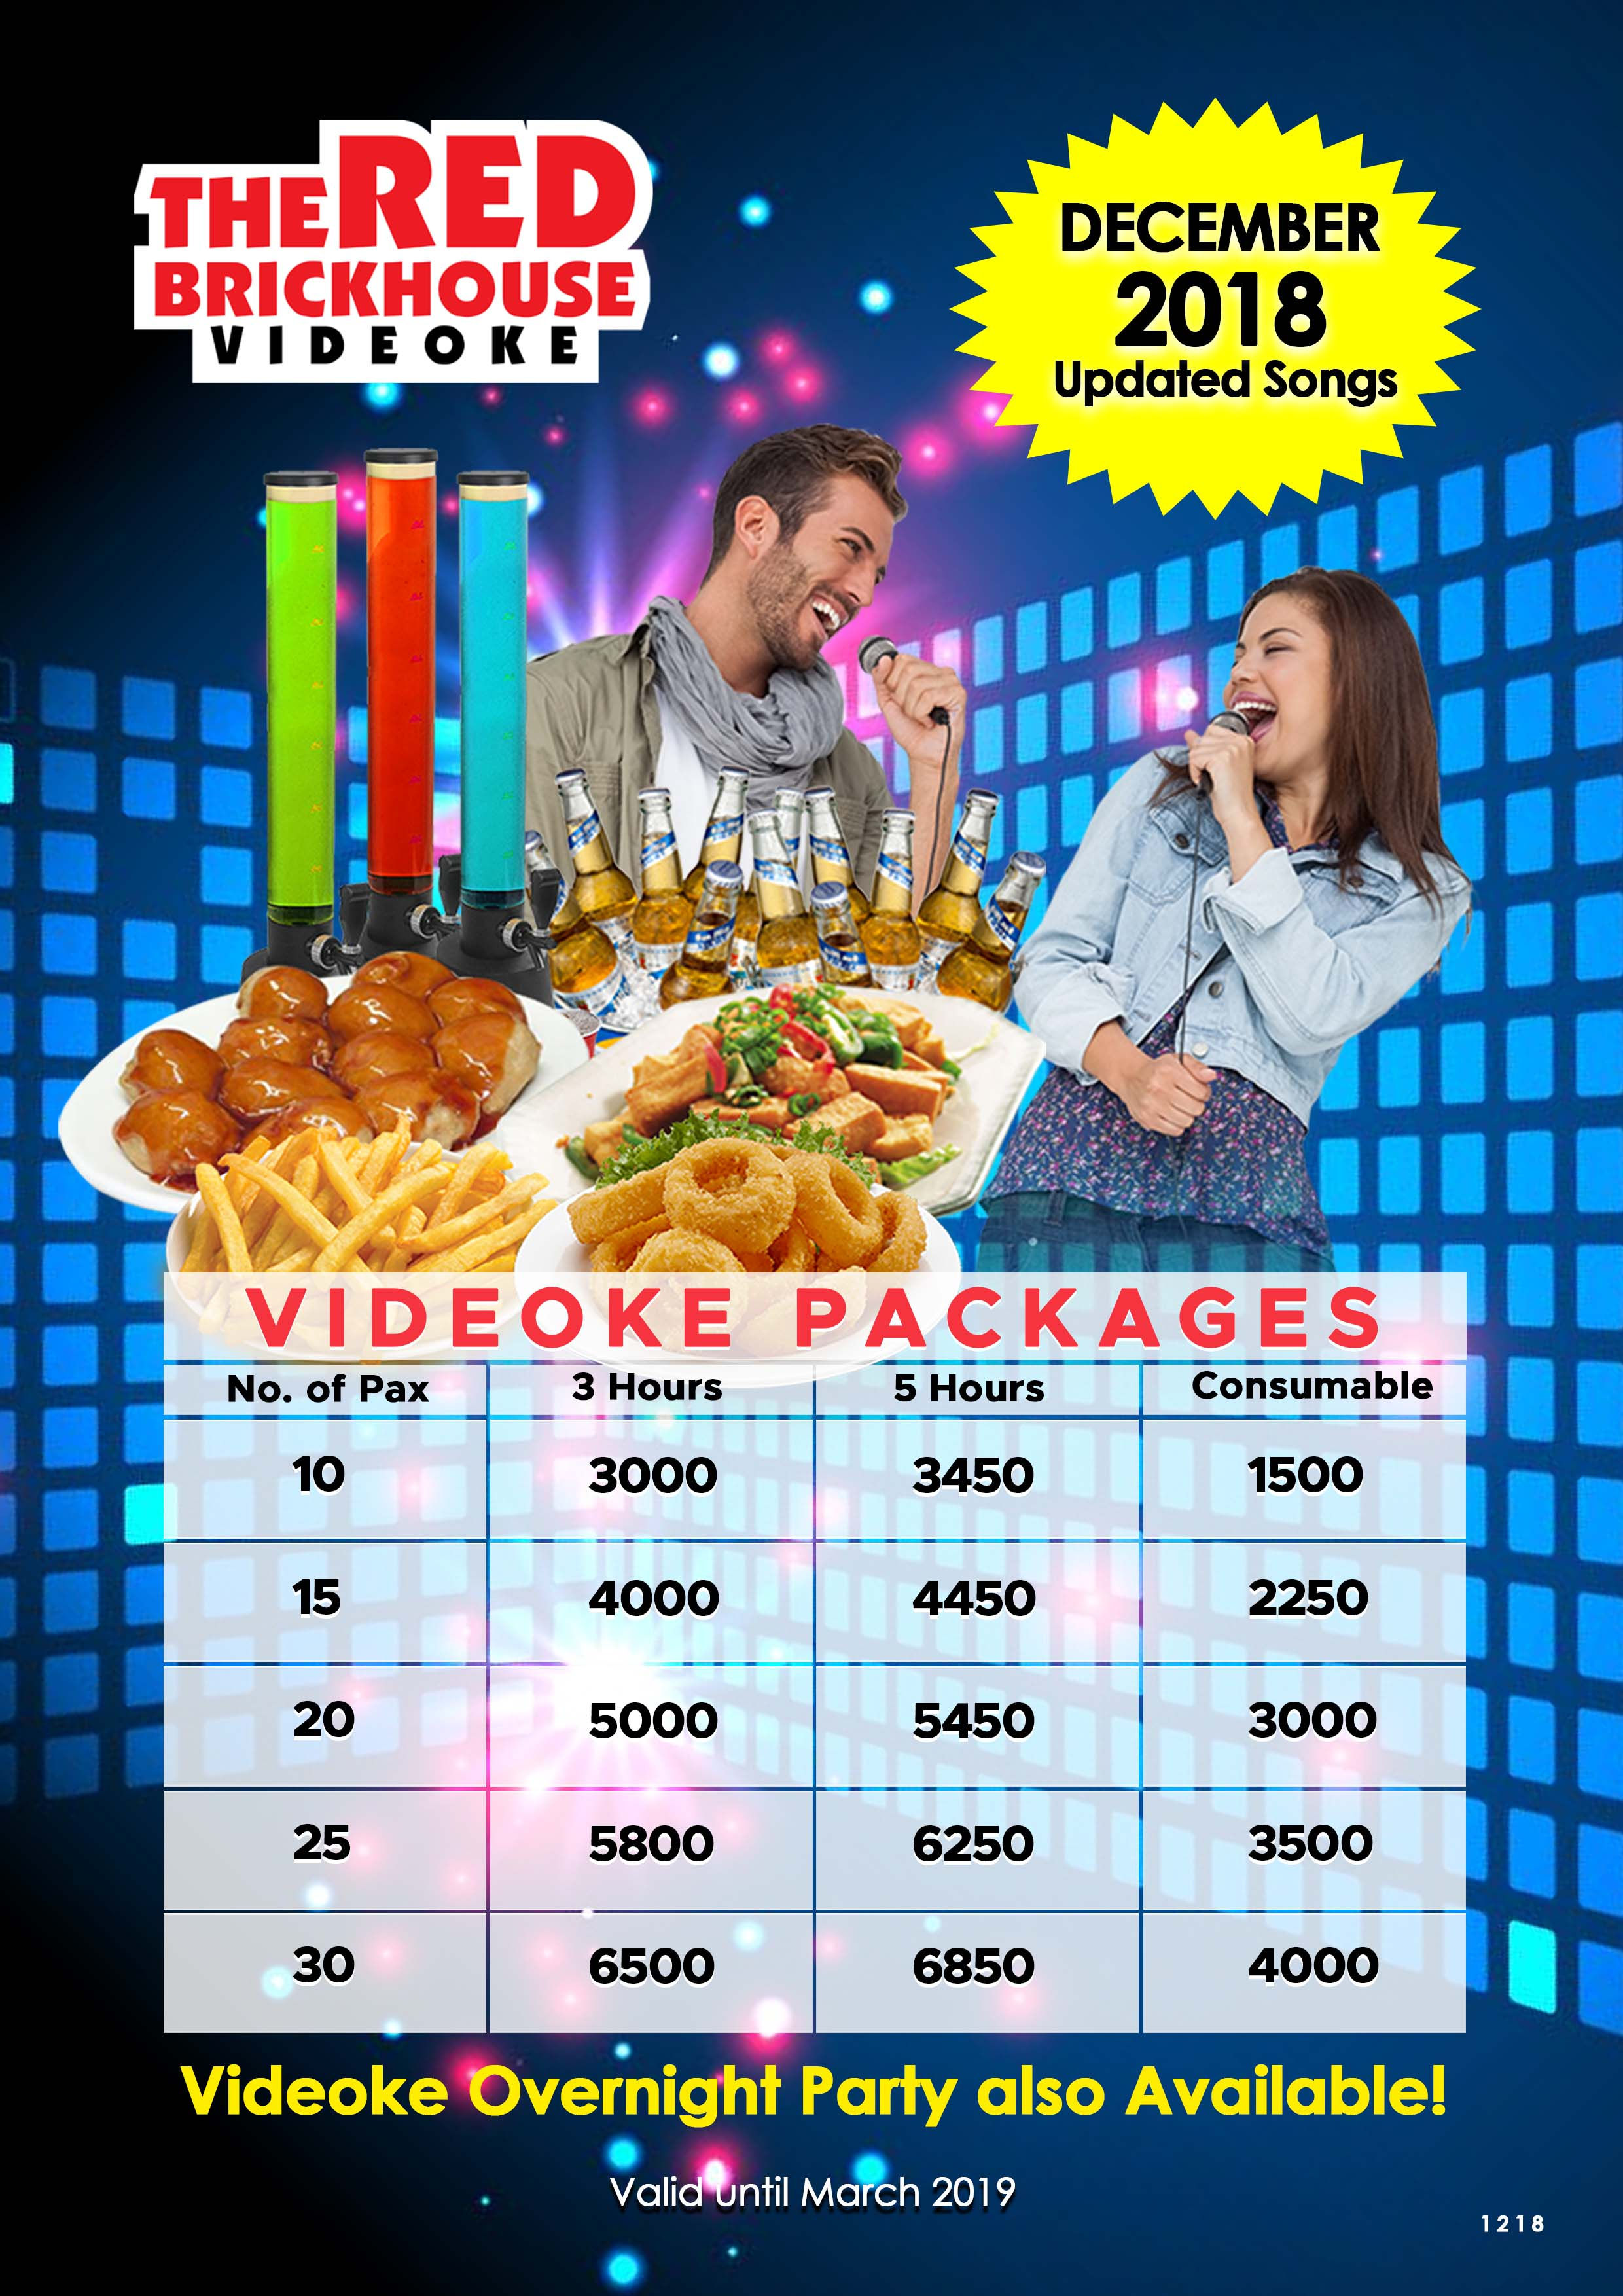 videoke consumable 2018 rooms498.com